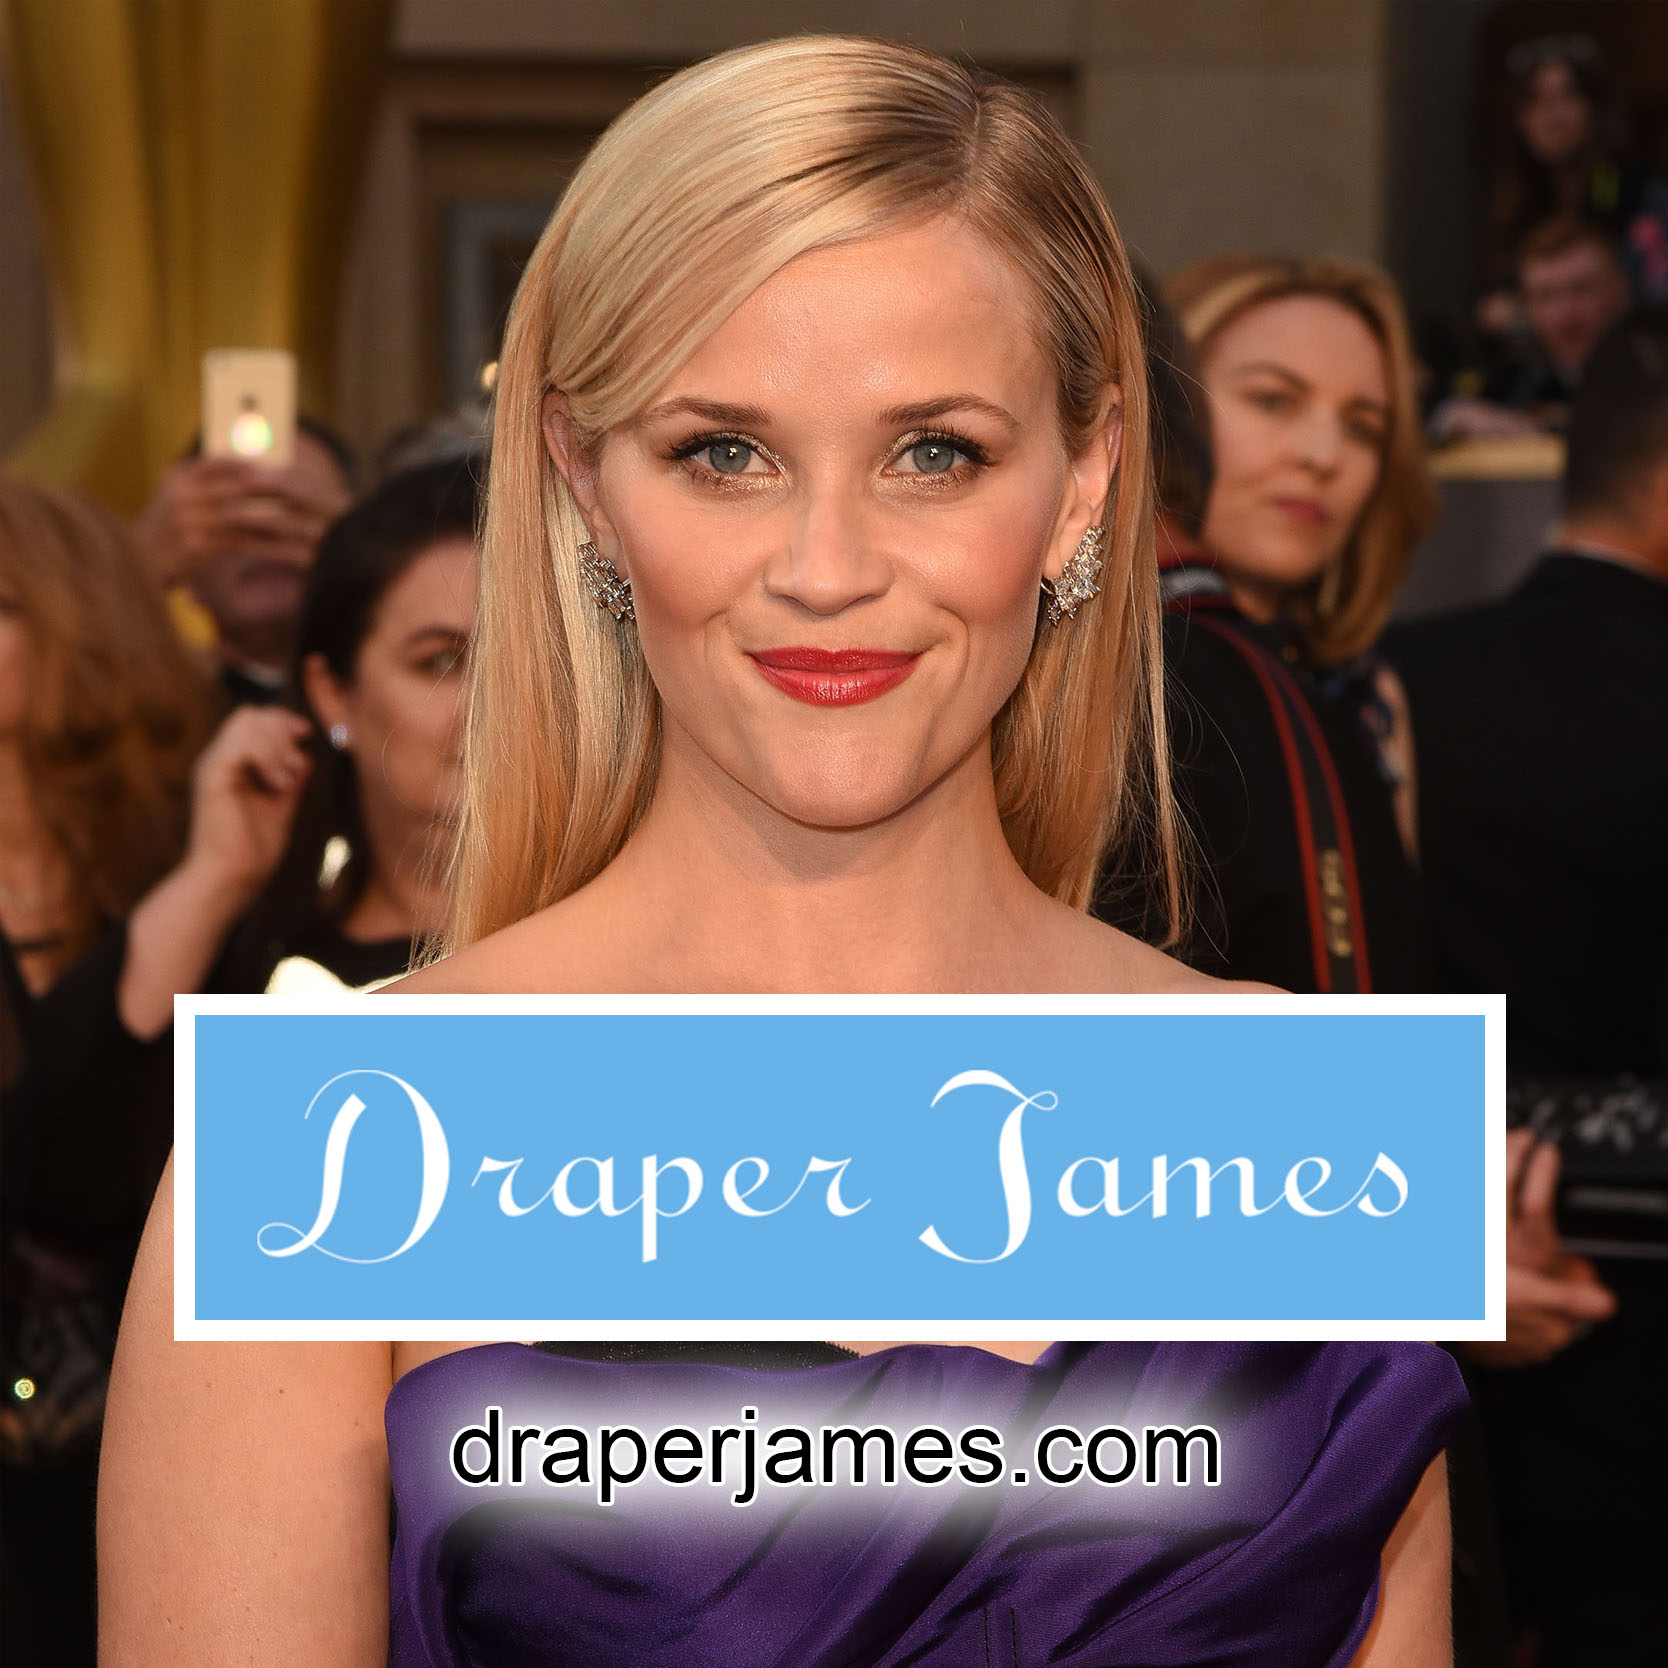 reese-witherspoon-website